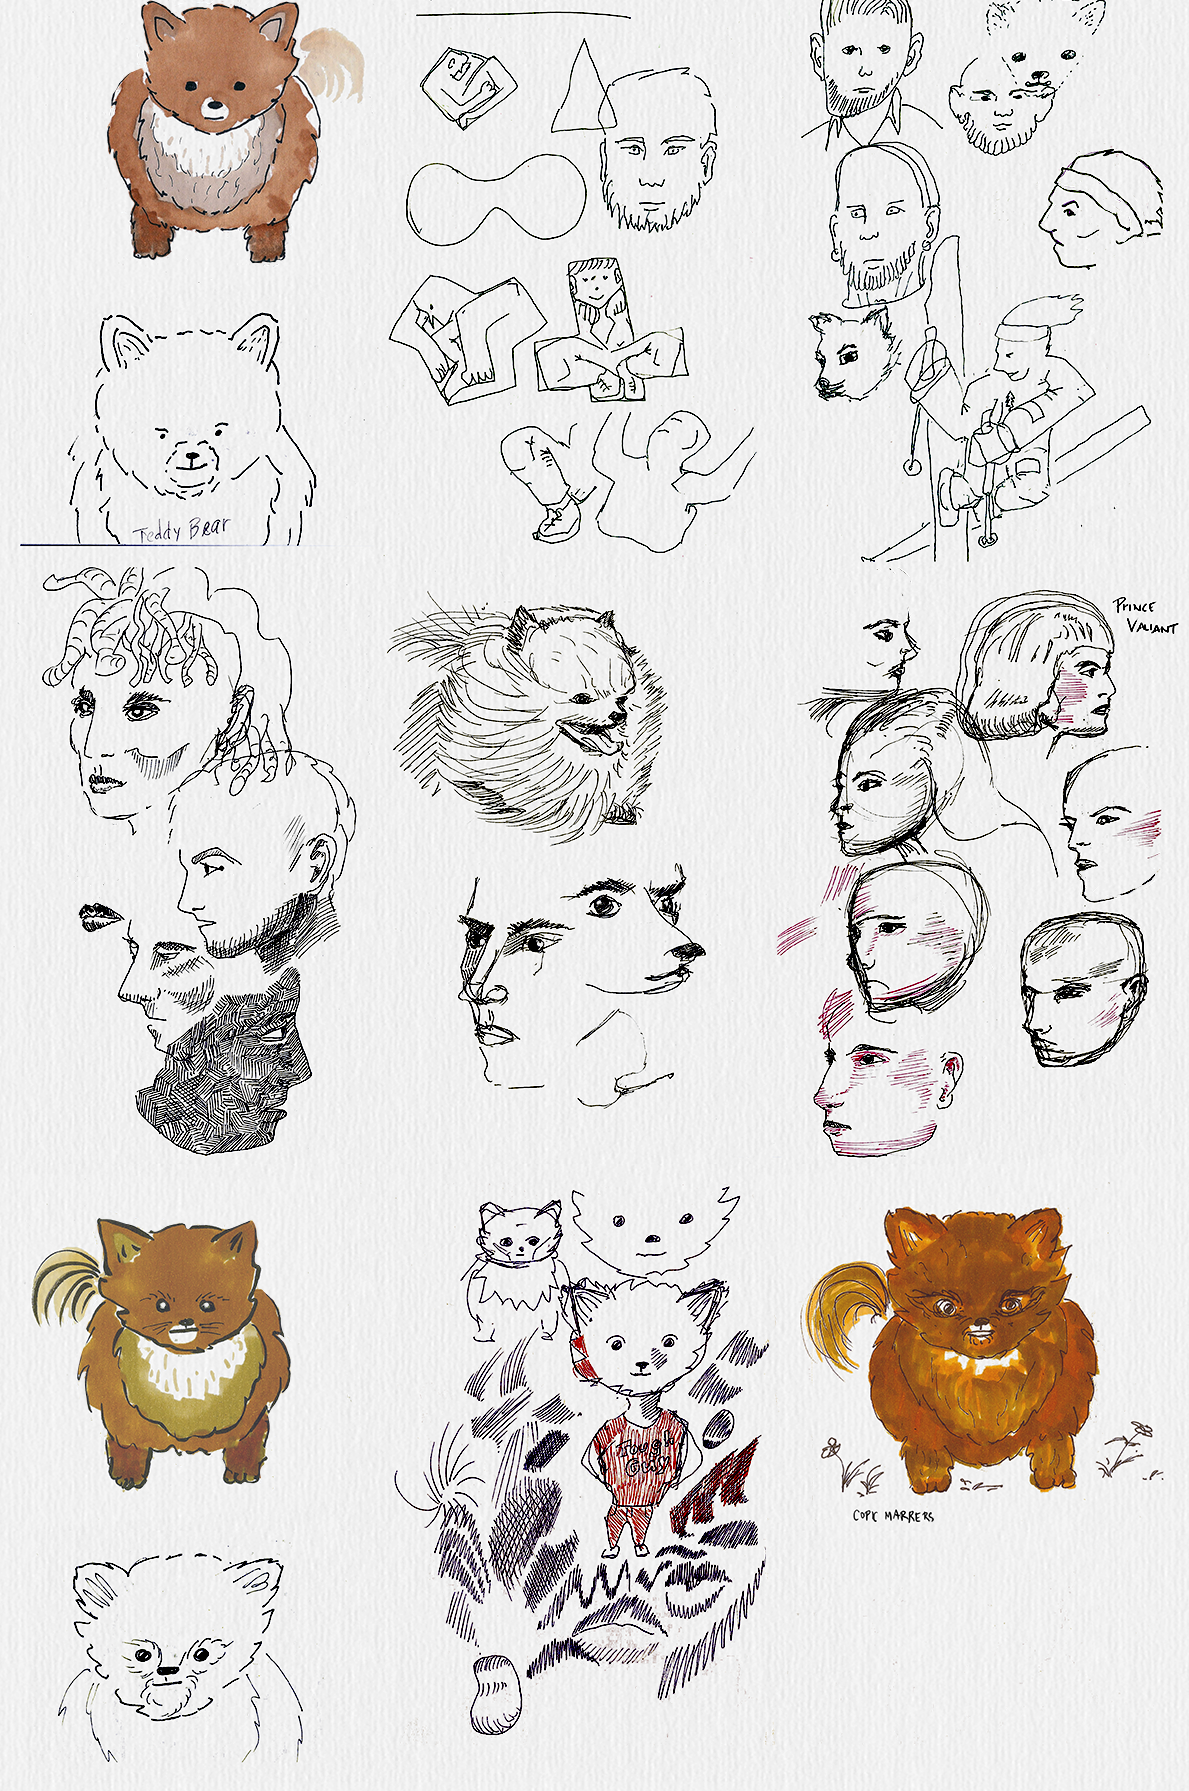 A selection of this week's sketches. I've been tinkering with Copic markers this week. Pomeranians are hard to draw — sometimes they end up looking like teddybears.